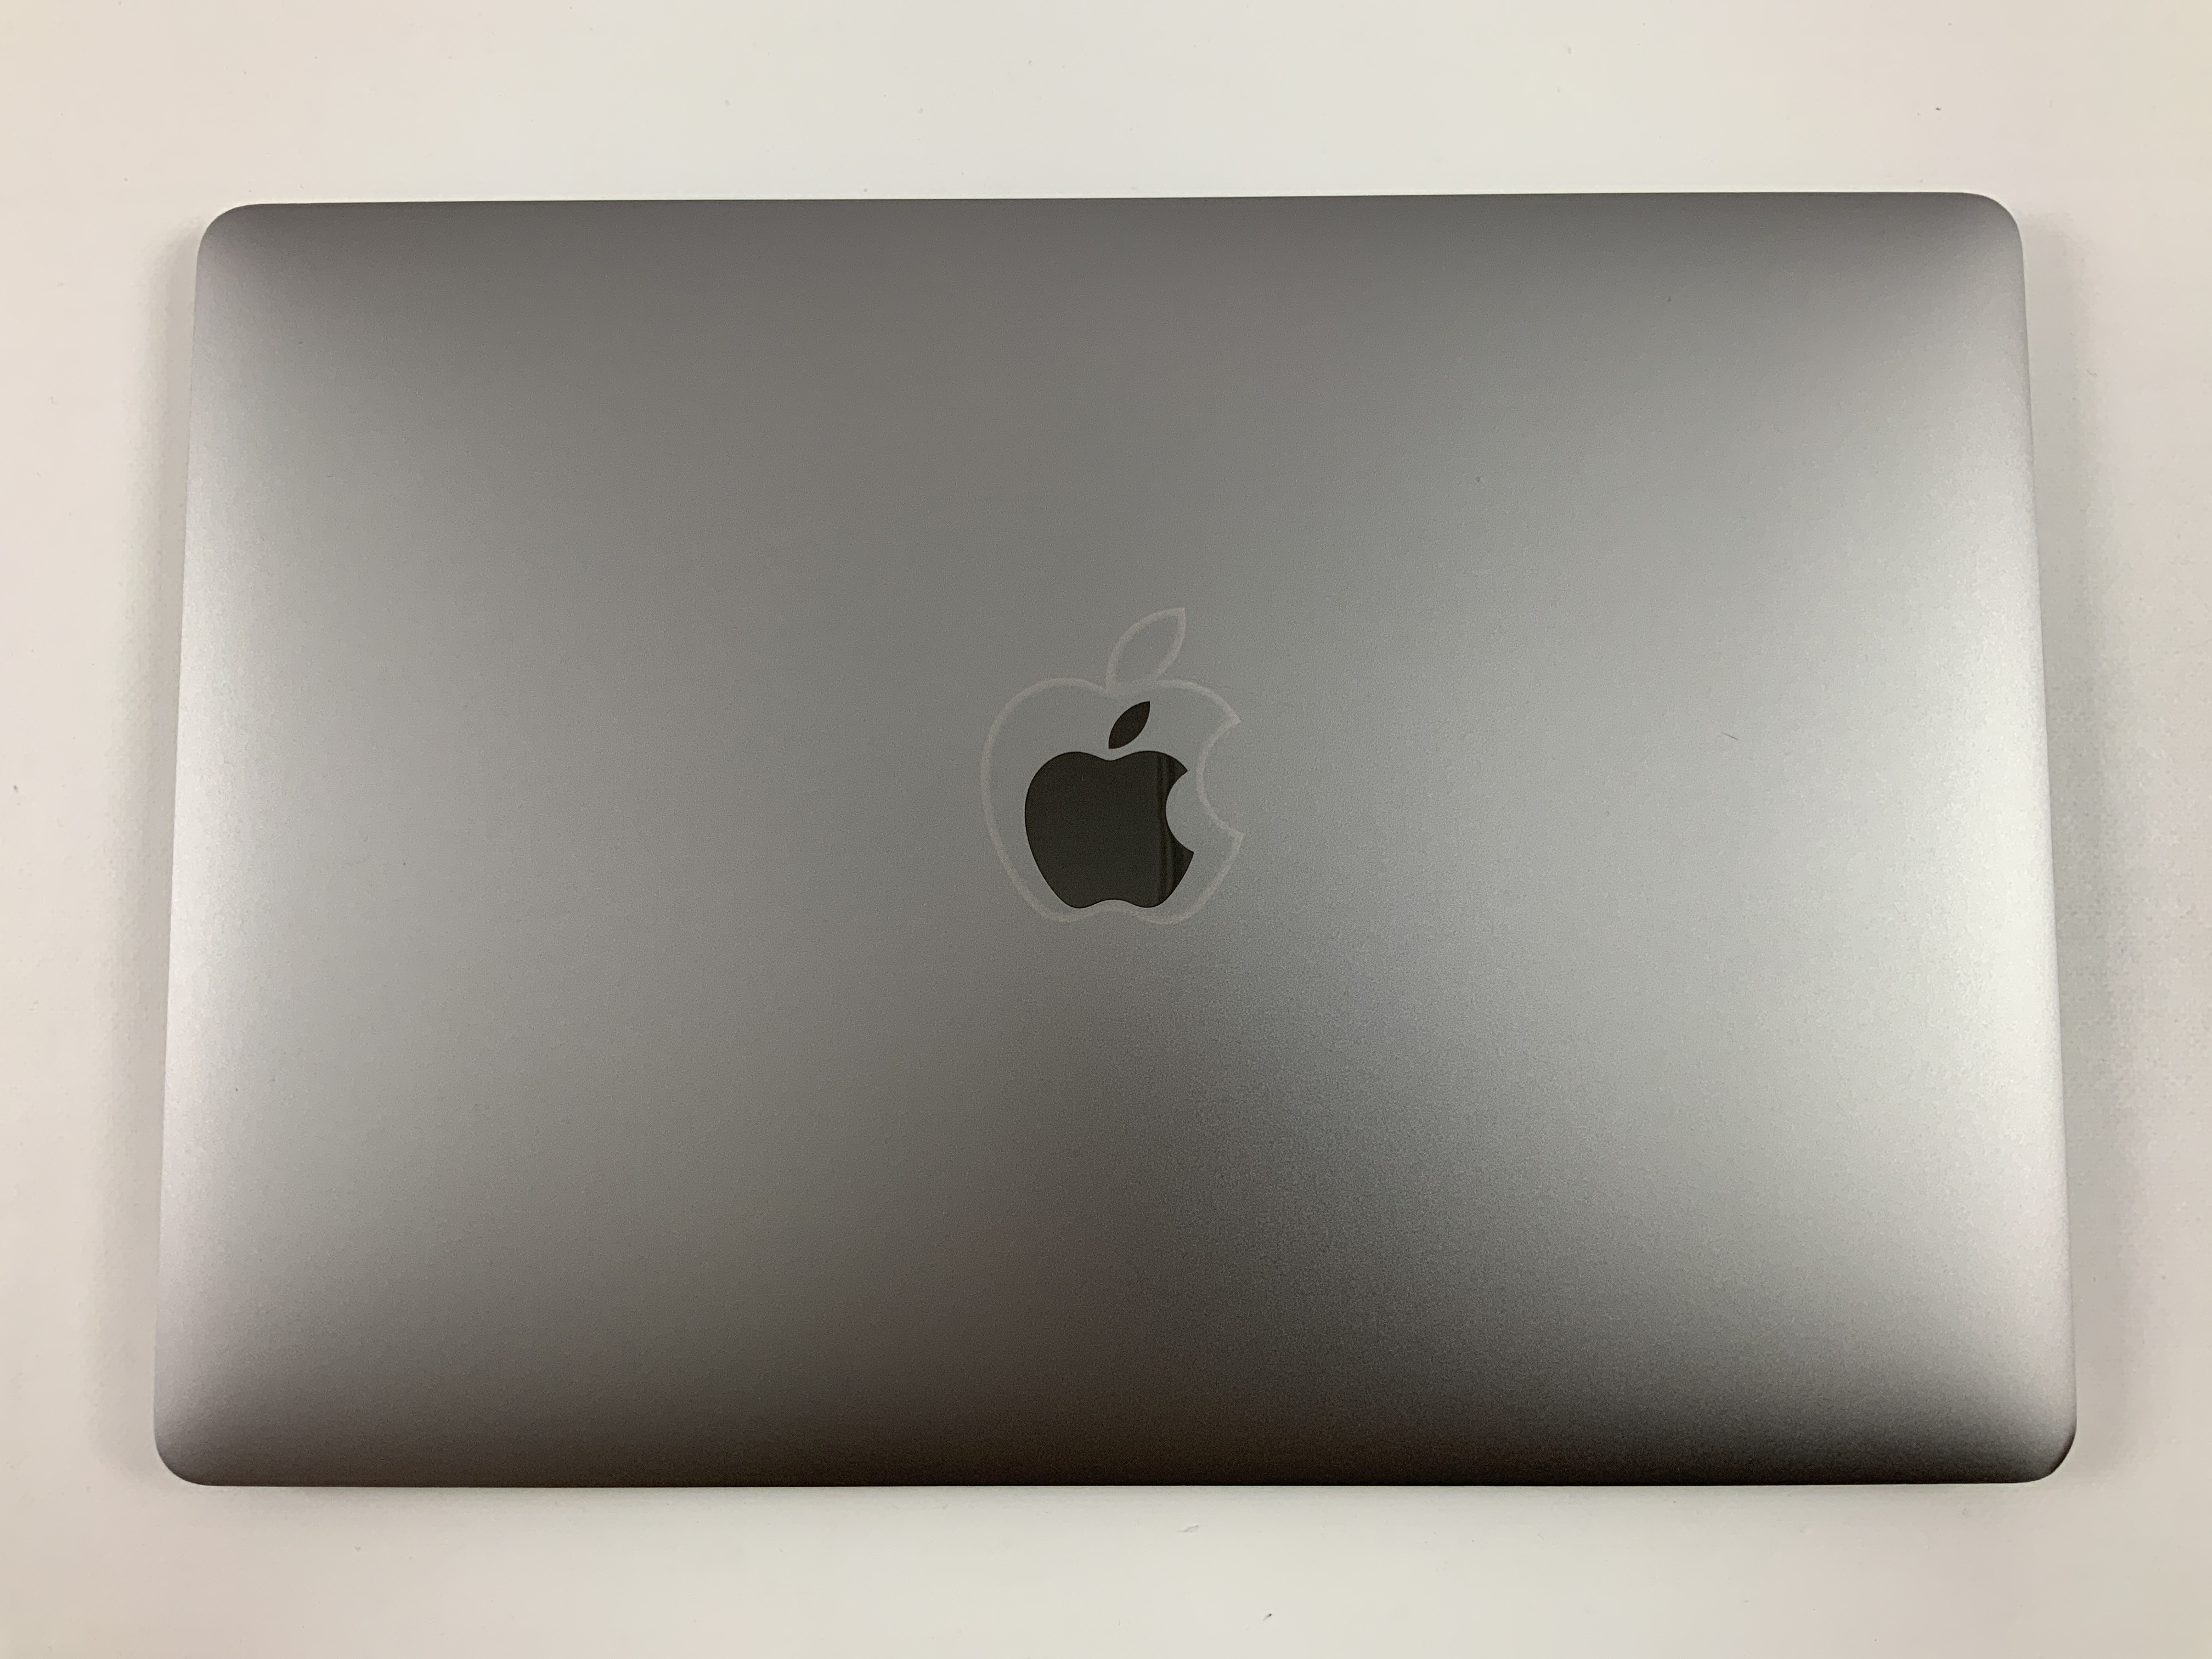 "MacBook Pro 15"" Touch Bar Mid 2018 (Intel 6-Core i7 2.2 GHz 16 GB RAM 512 GB SSD), Space Gray, Intel 6-Core i7 2.2 GHz, 16 GB RAM, 512 GB SSD, immagine 2"